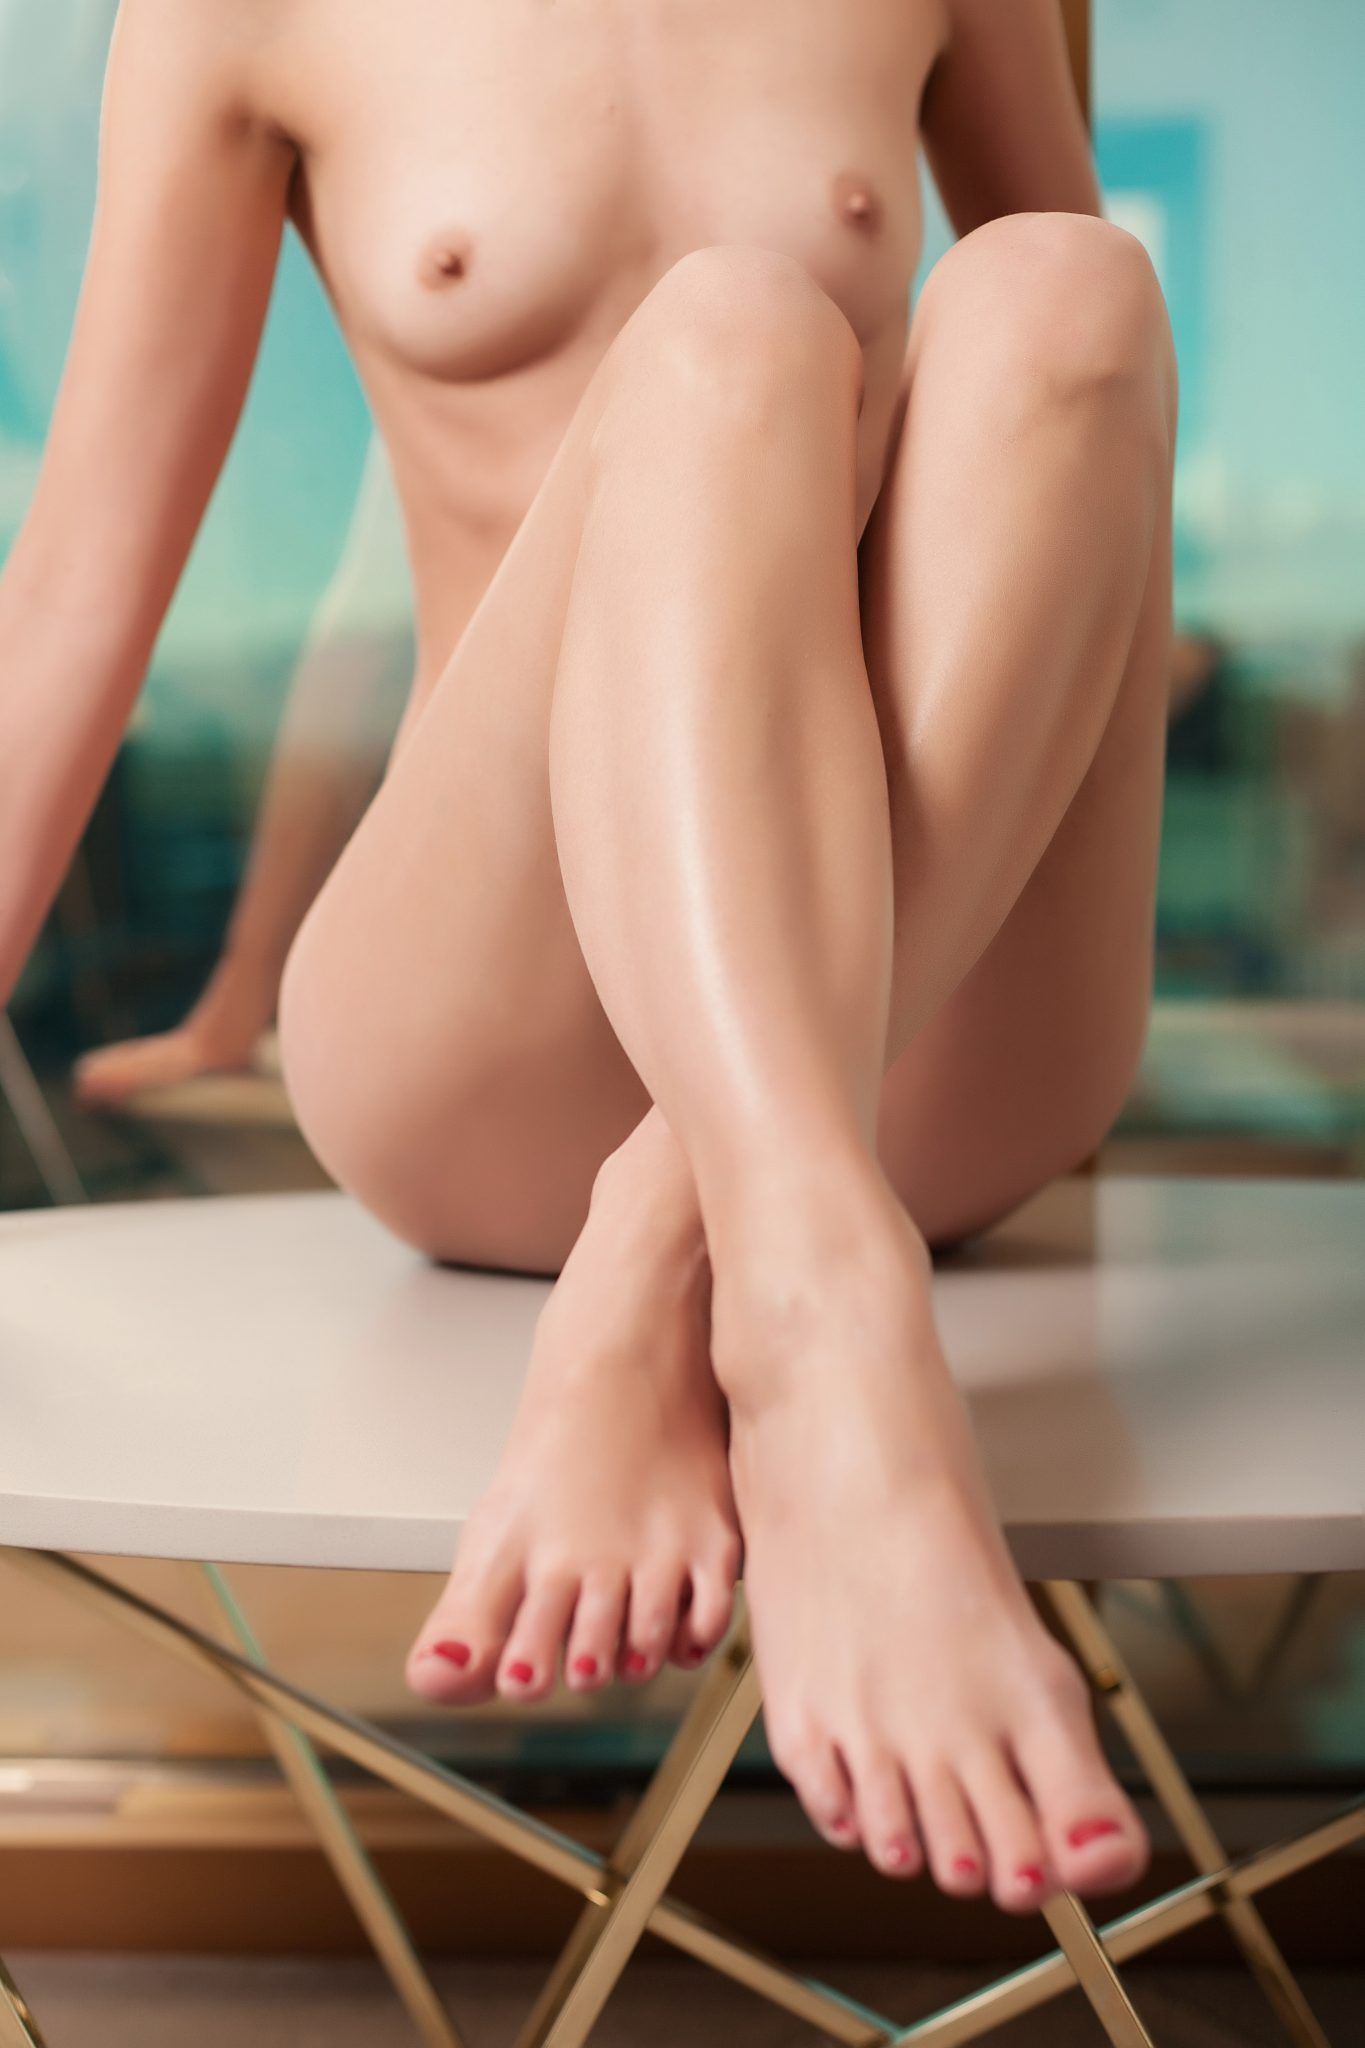 Highlight your cute toes with this nude pose by Haute Shots iBoudoir in Las Vegas.